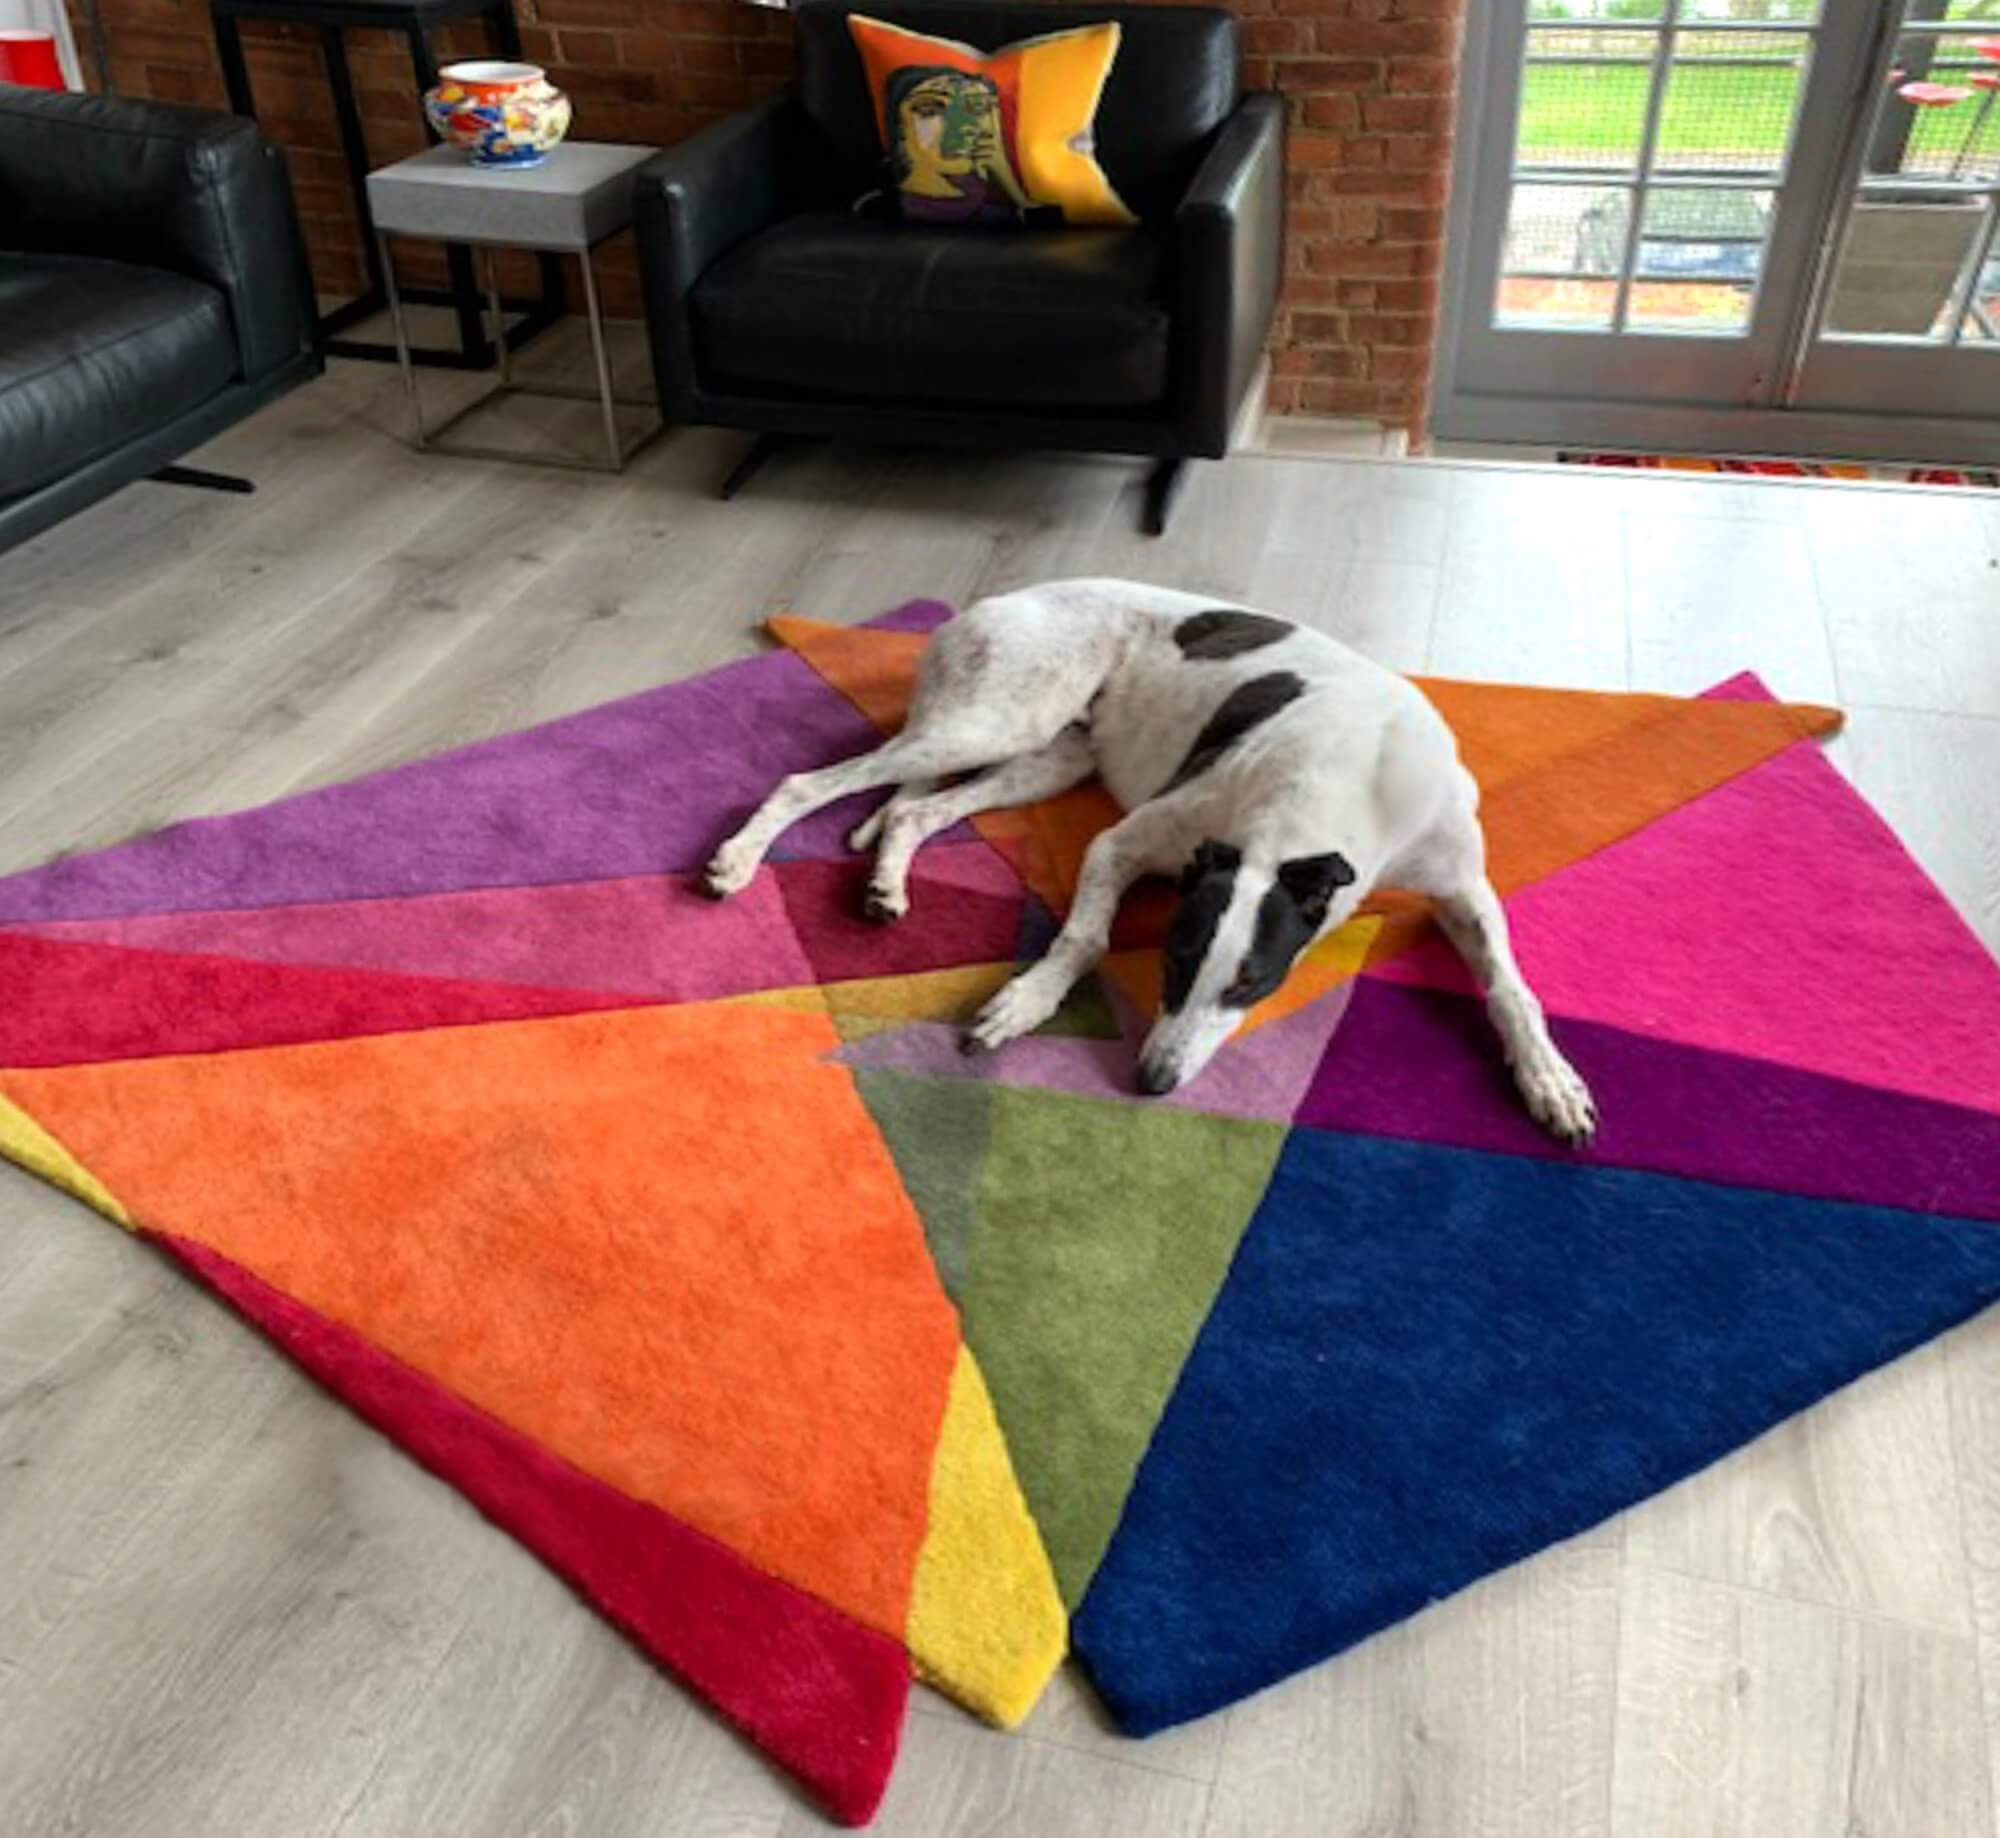 Pet Friendly Rugs - How to clean an expensive rug